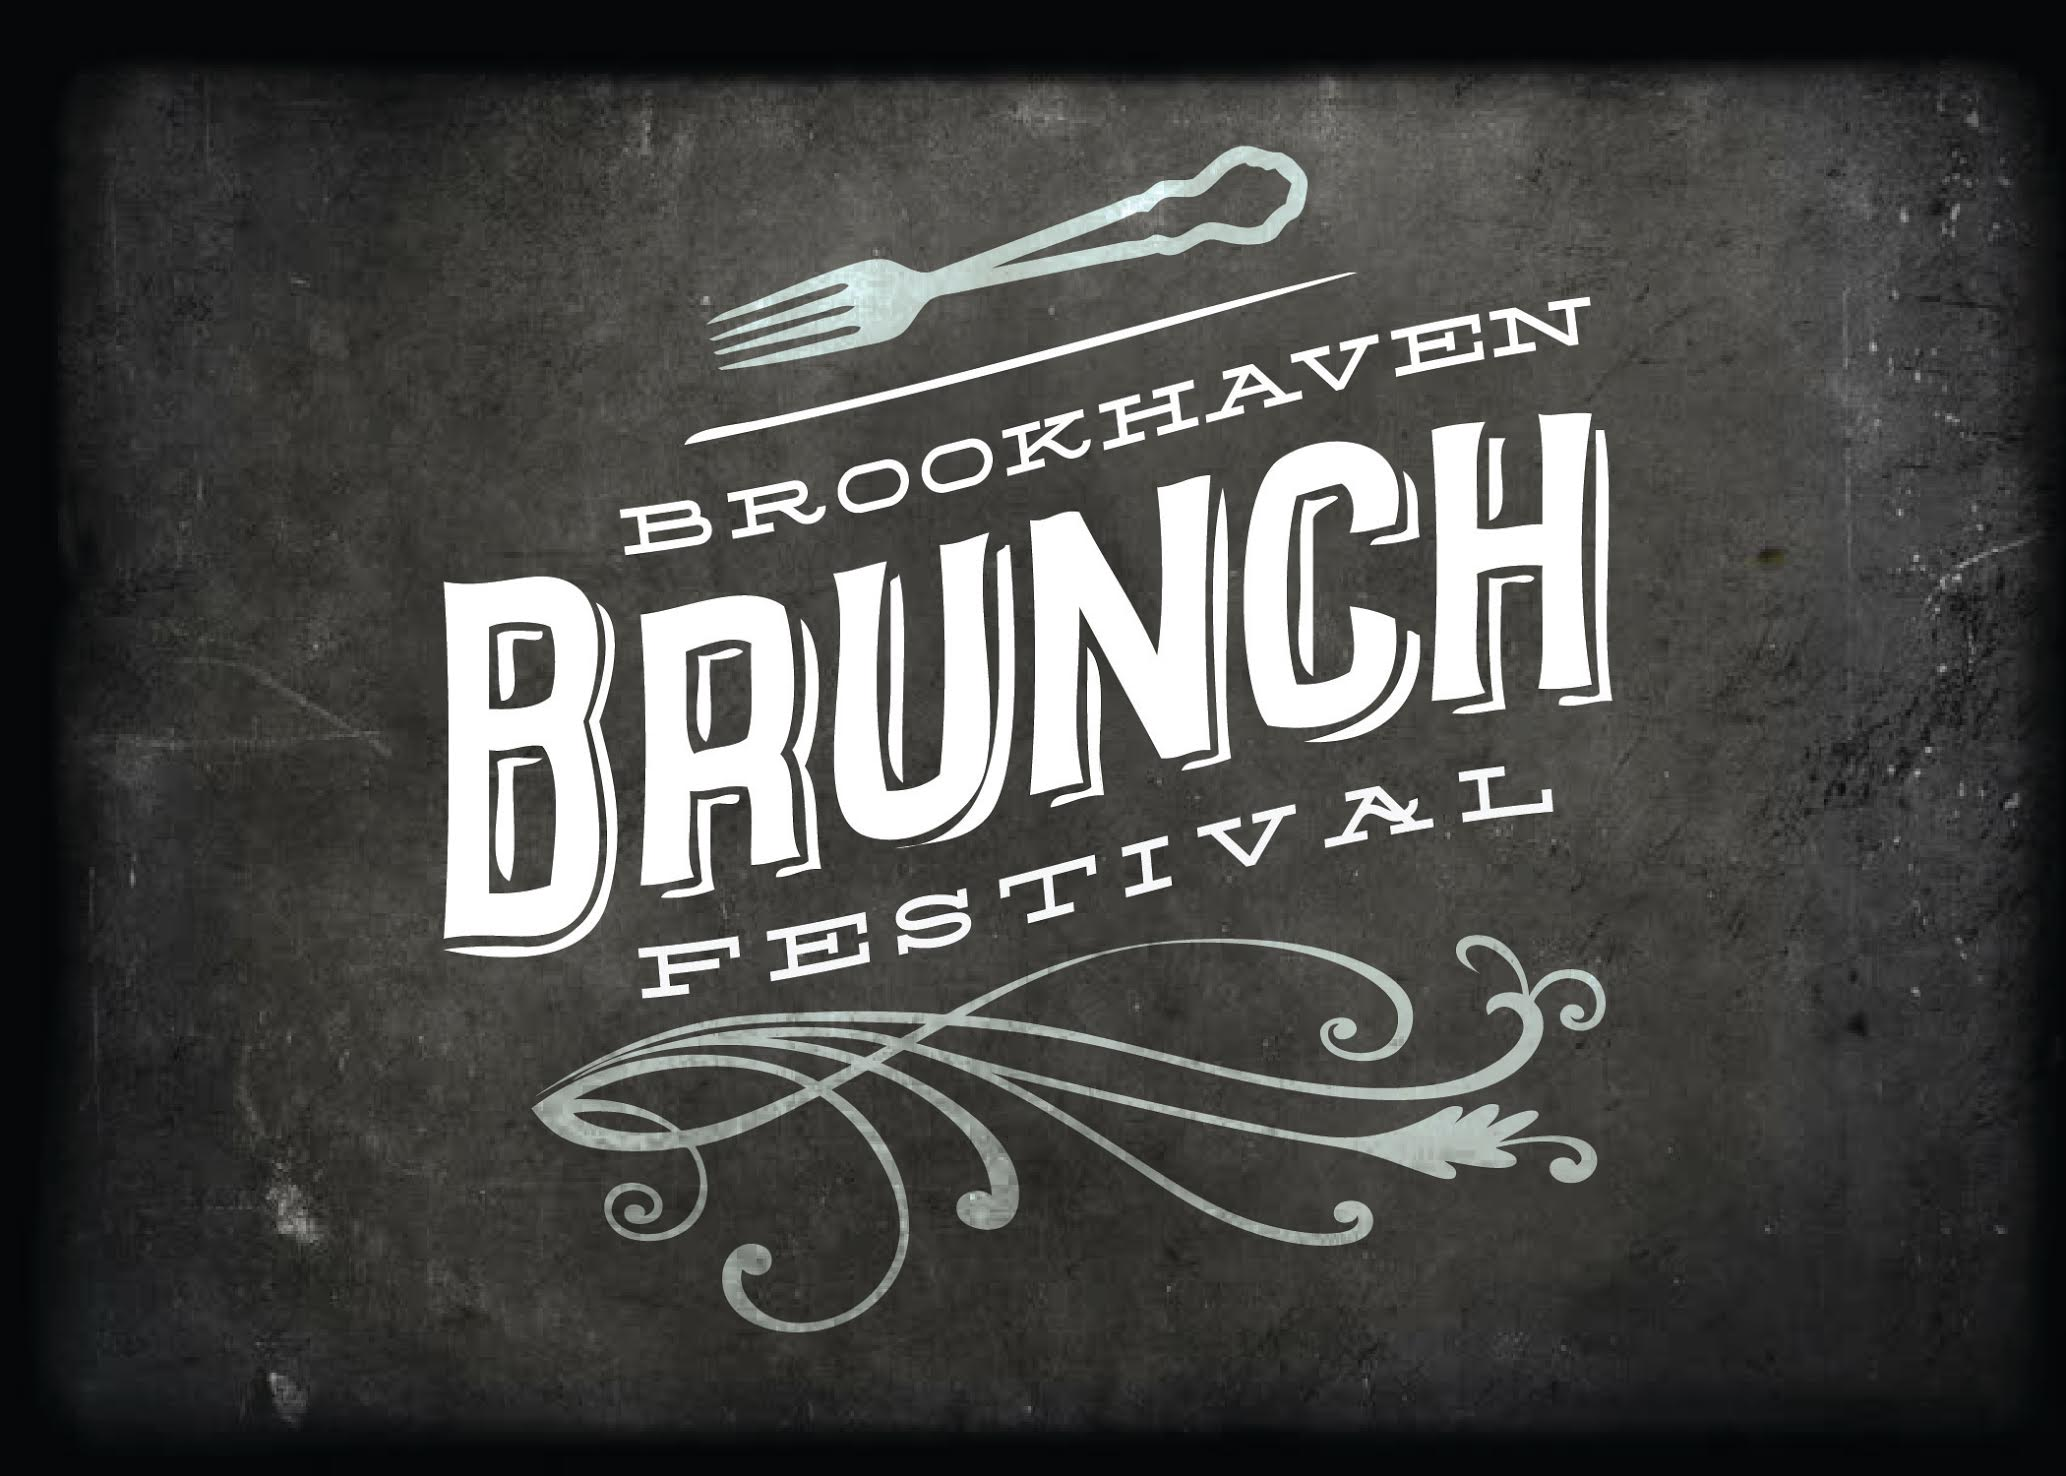 Brookhaven Brunch Festival